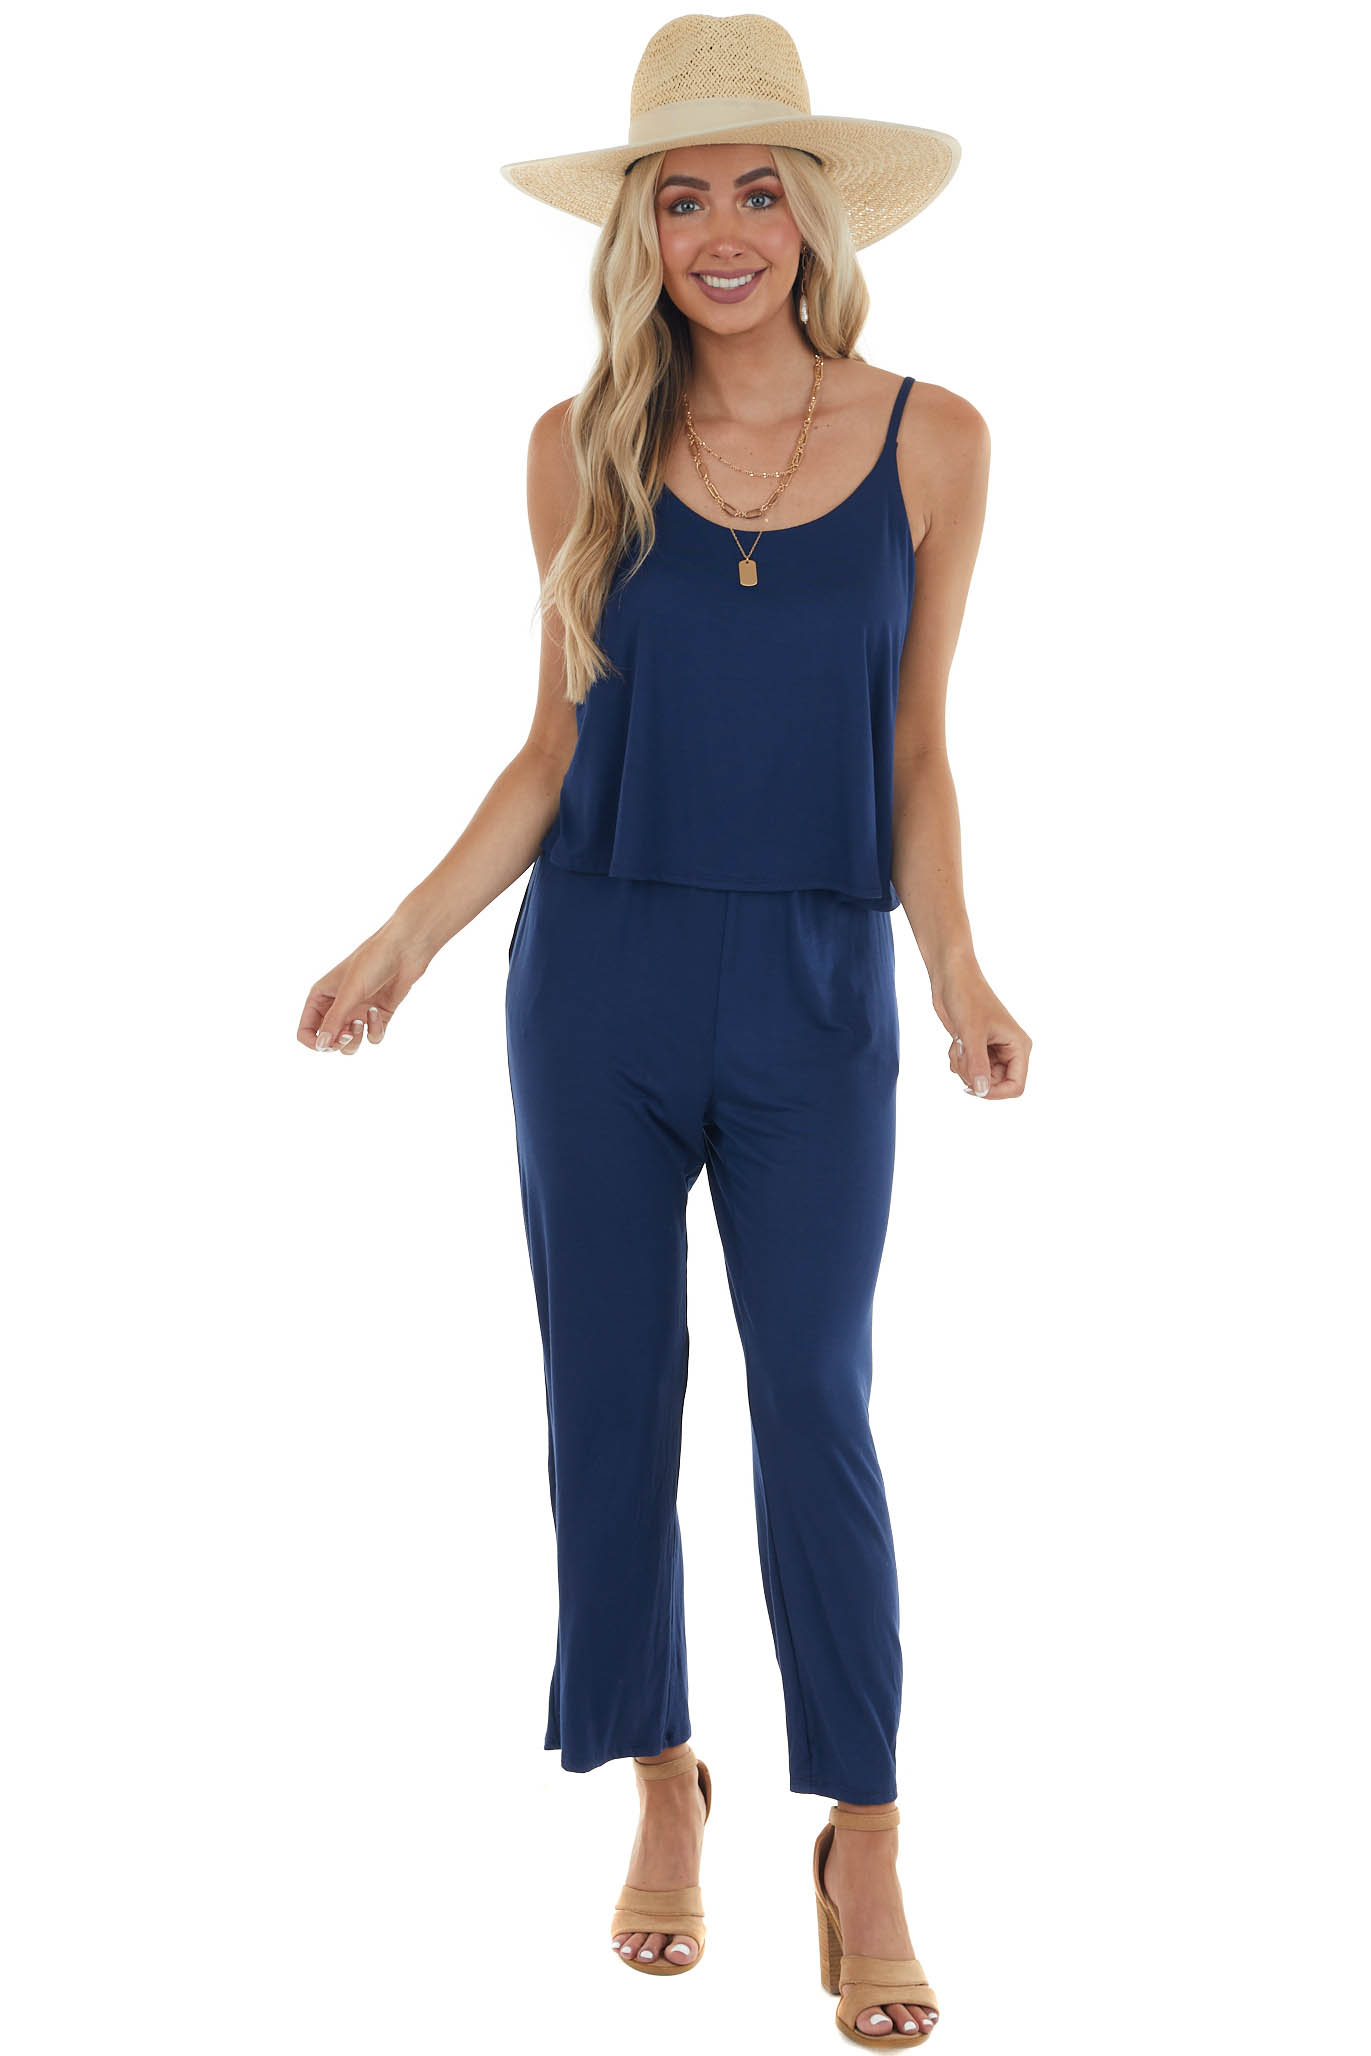 Deep Cobalt Sleeveless Overlaying Knit Jumpsuit with Pockets